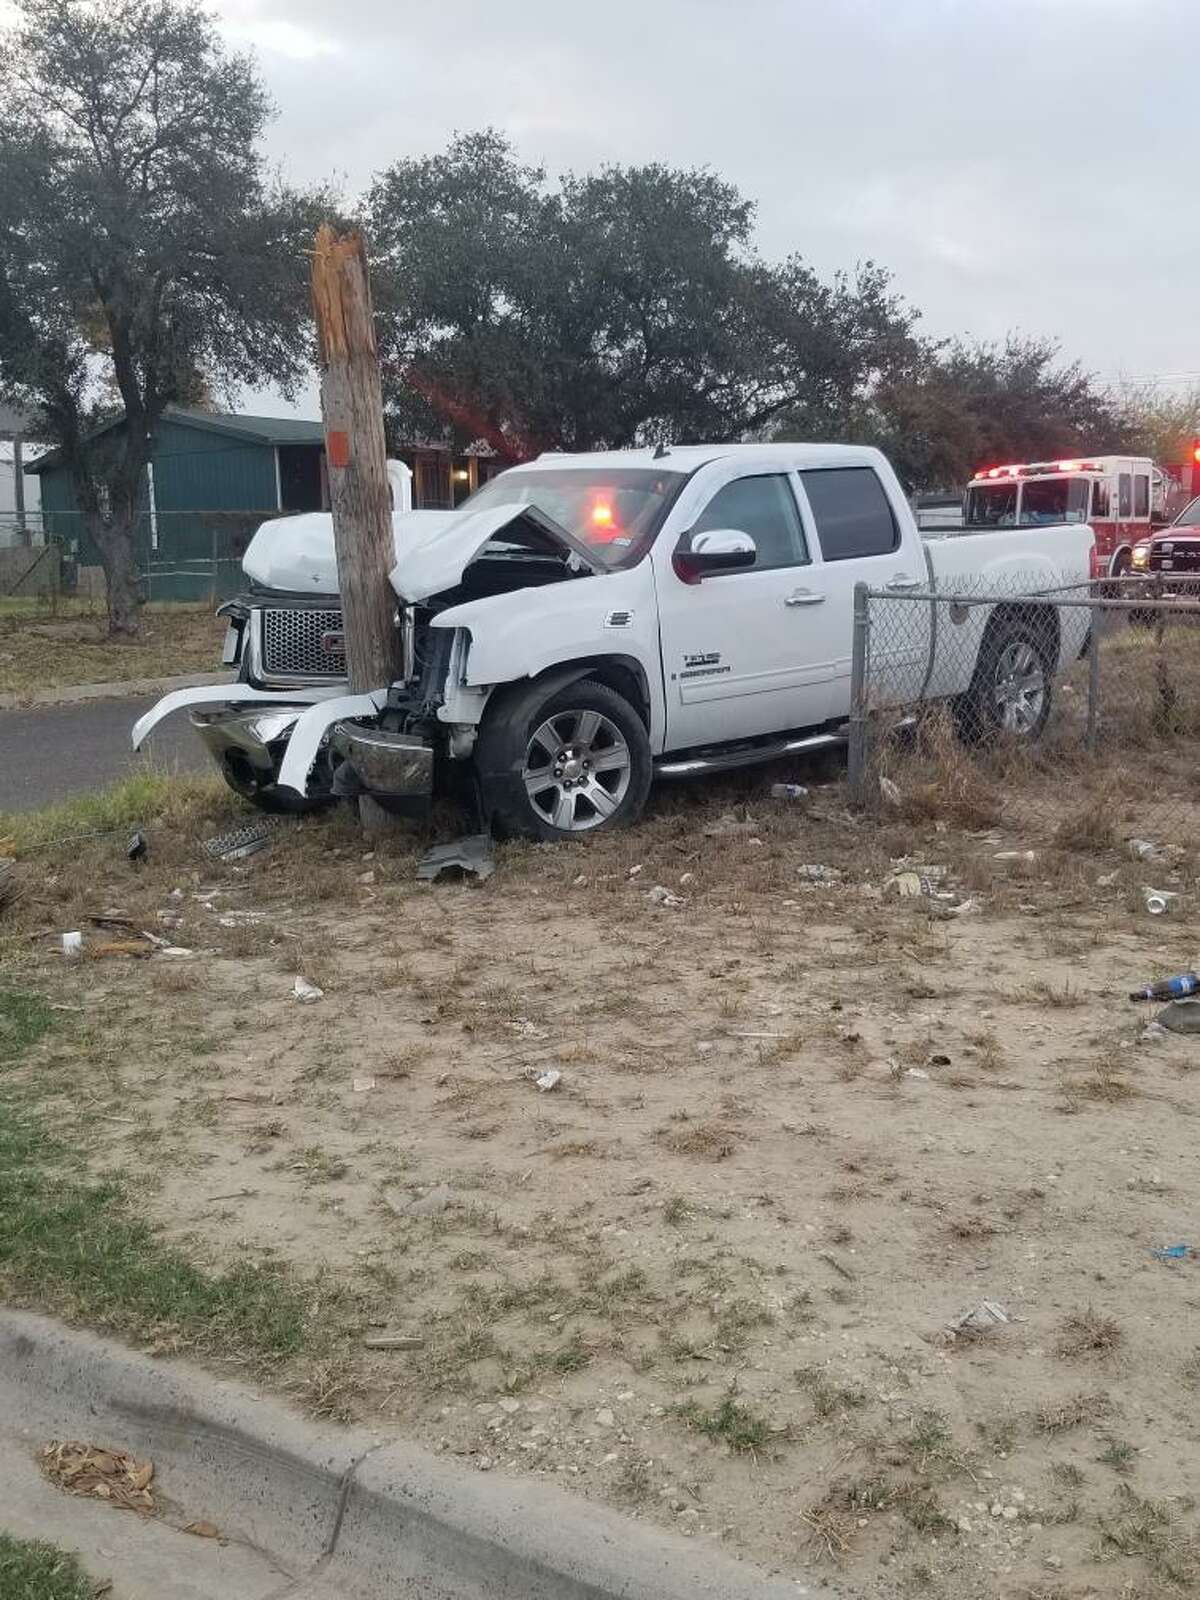 A GMC Sierra crashed into a utility pole early Friday in the intersection Pierce Street and Pinder Avenue. A male patient refused treatment or transportation to a local hospital.